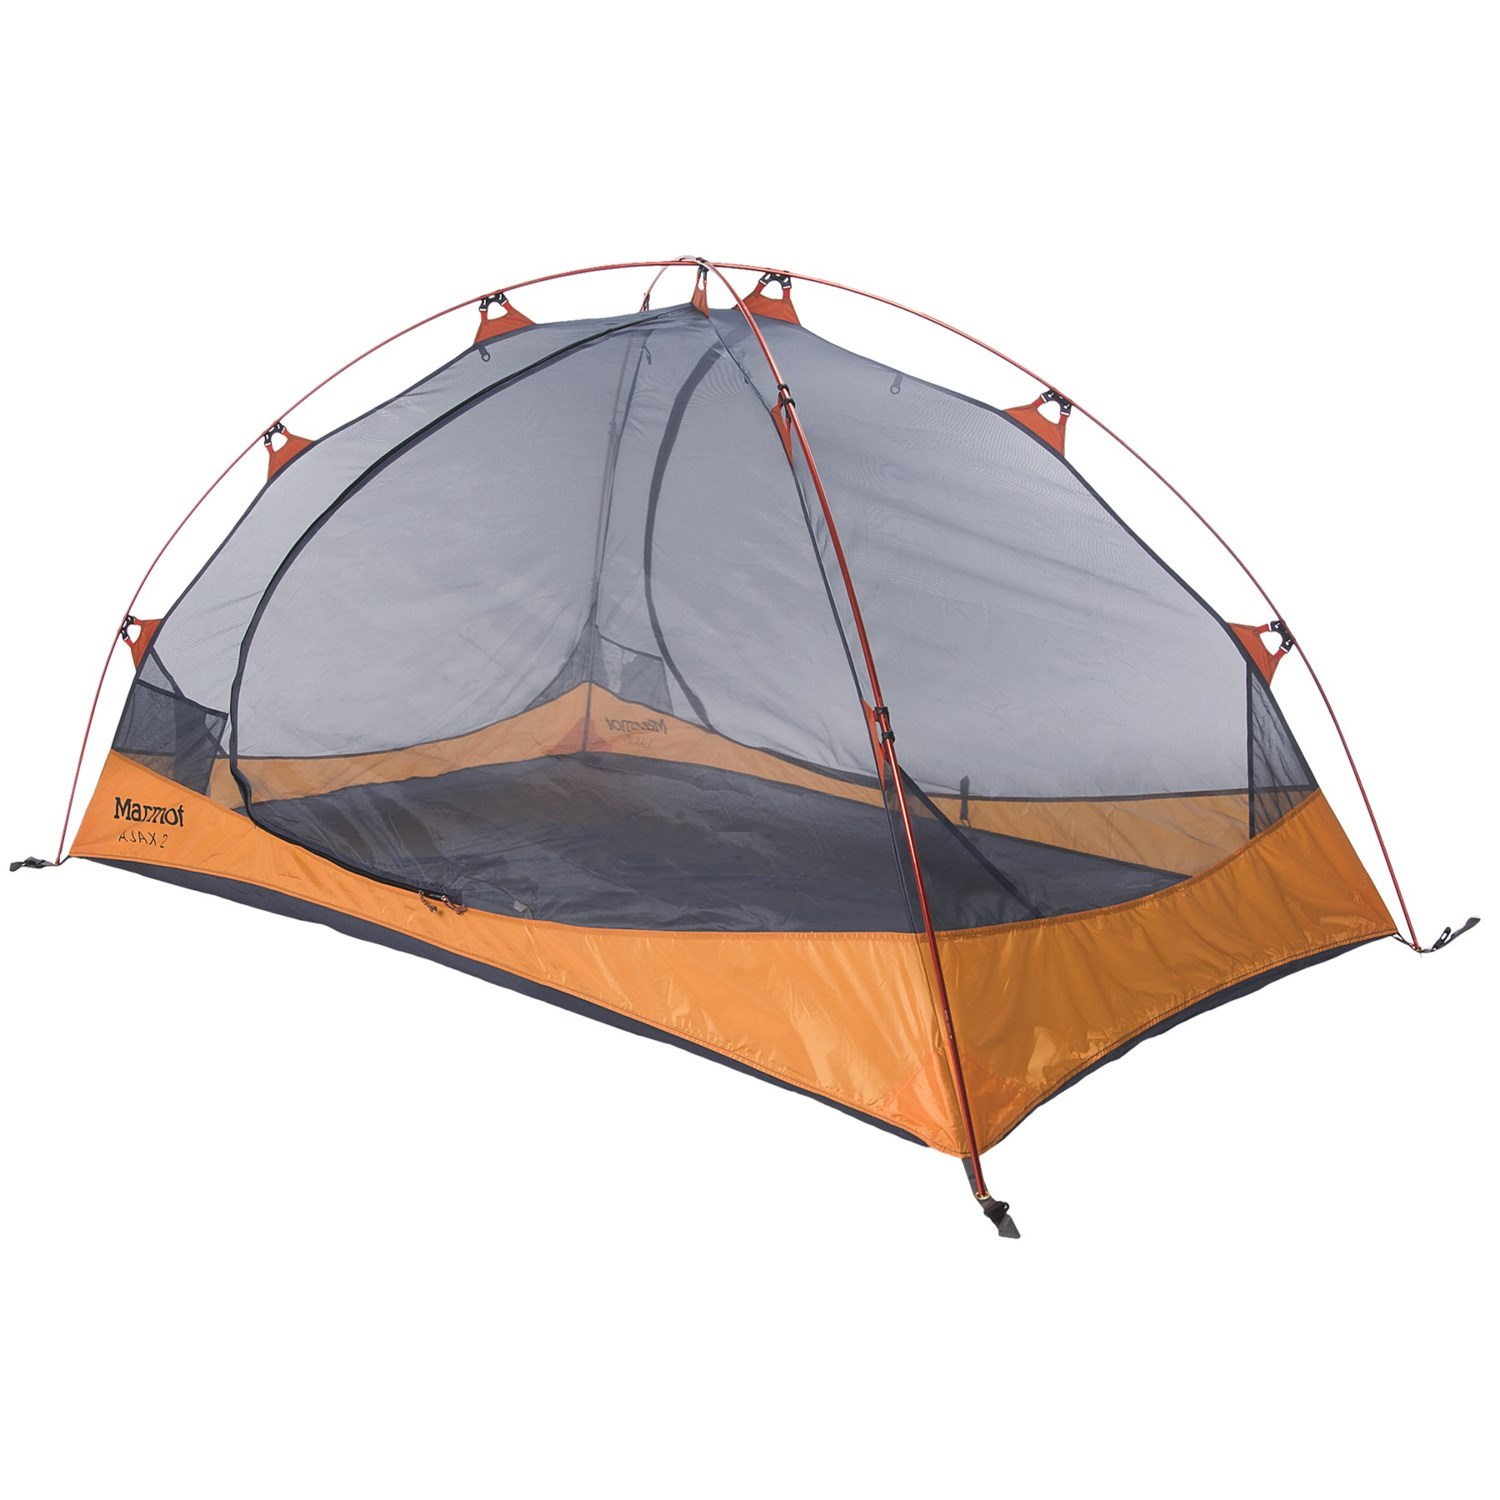 Marmot Ajax 2 Tent - 2-Person 3-Season in Pale Pumpkin/  sc 1 st  Sierra Trading Post & Marmot Ajax 2 Tent - 2-Person 3-Season